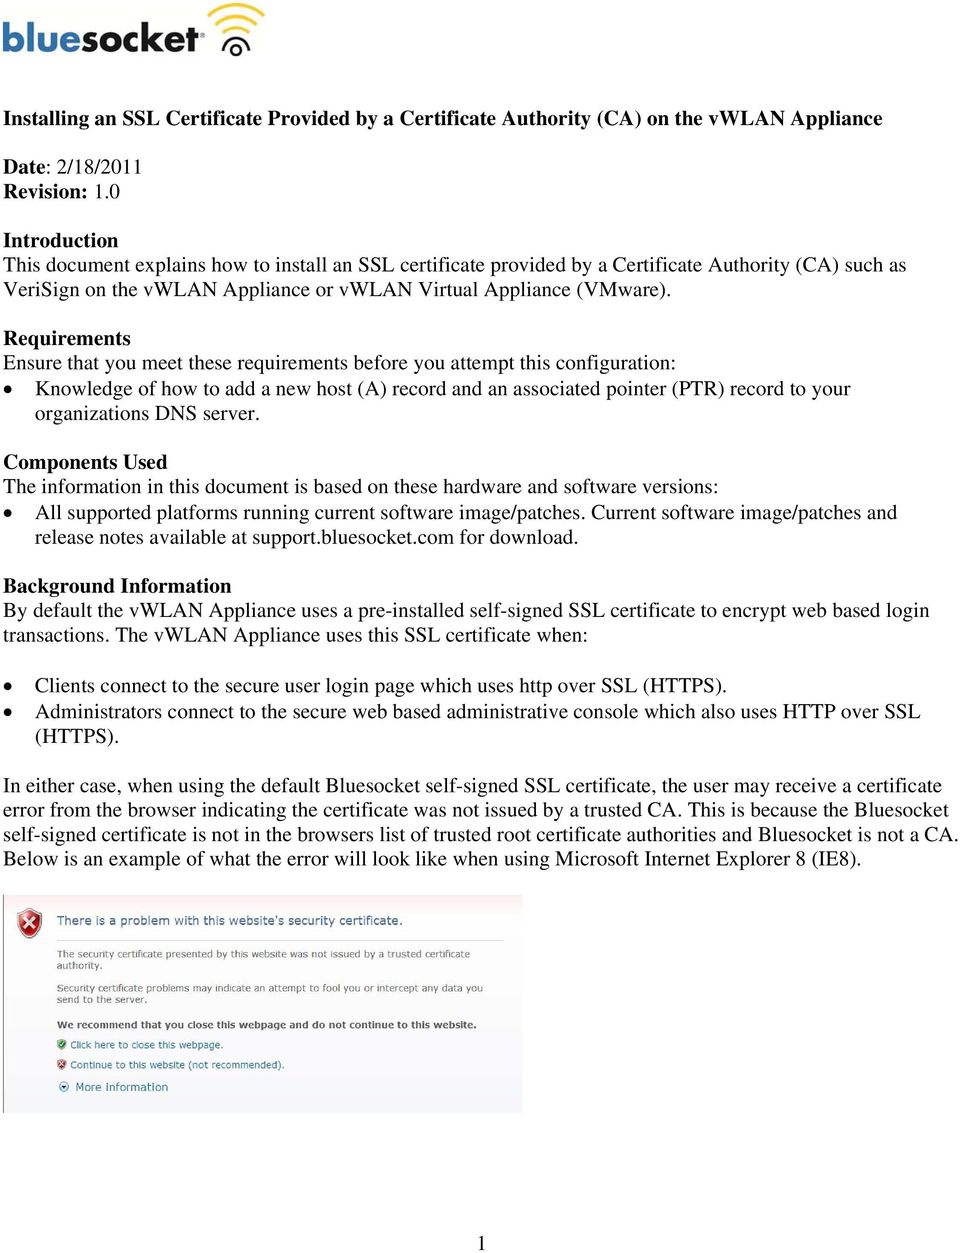 Installing An Ssl Certificate Provided By A Certificate Authority